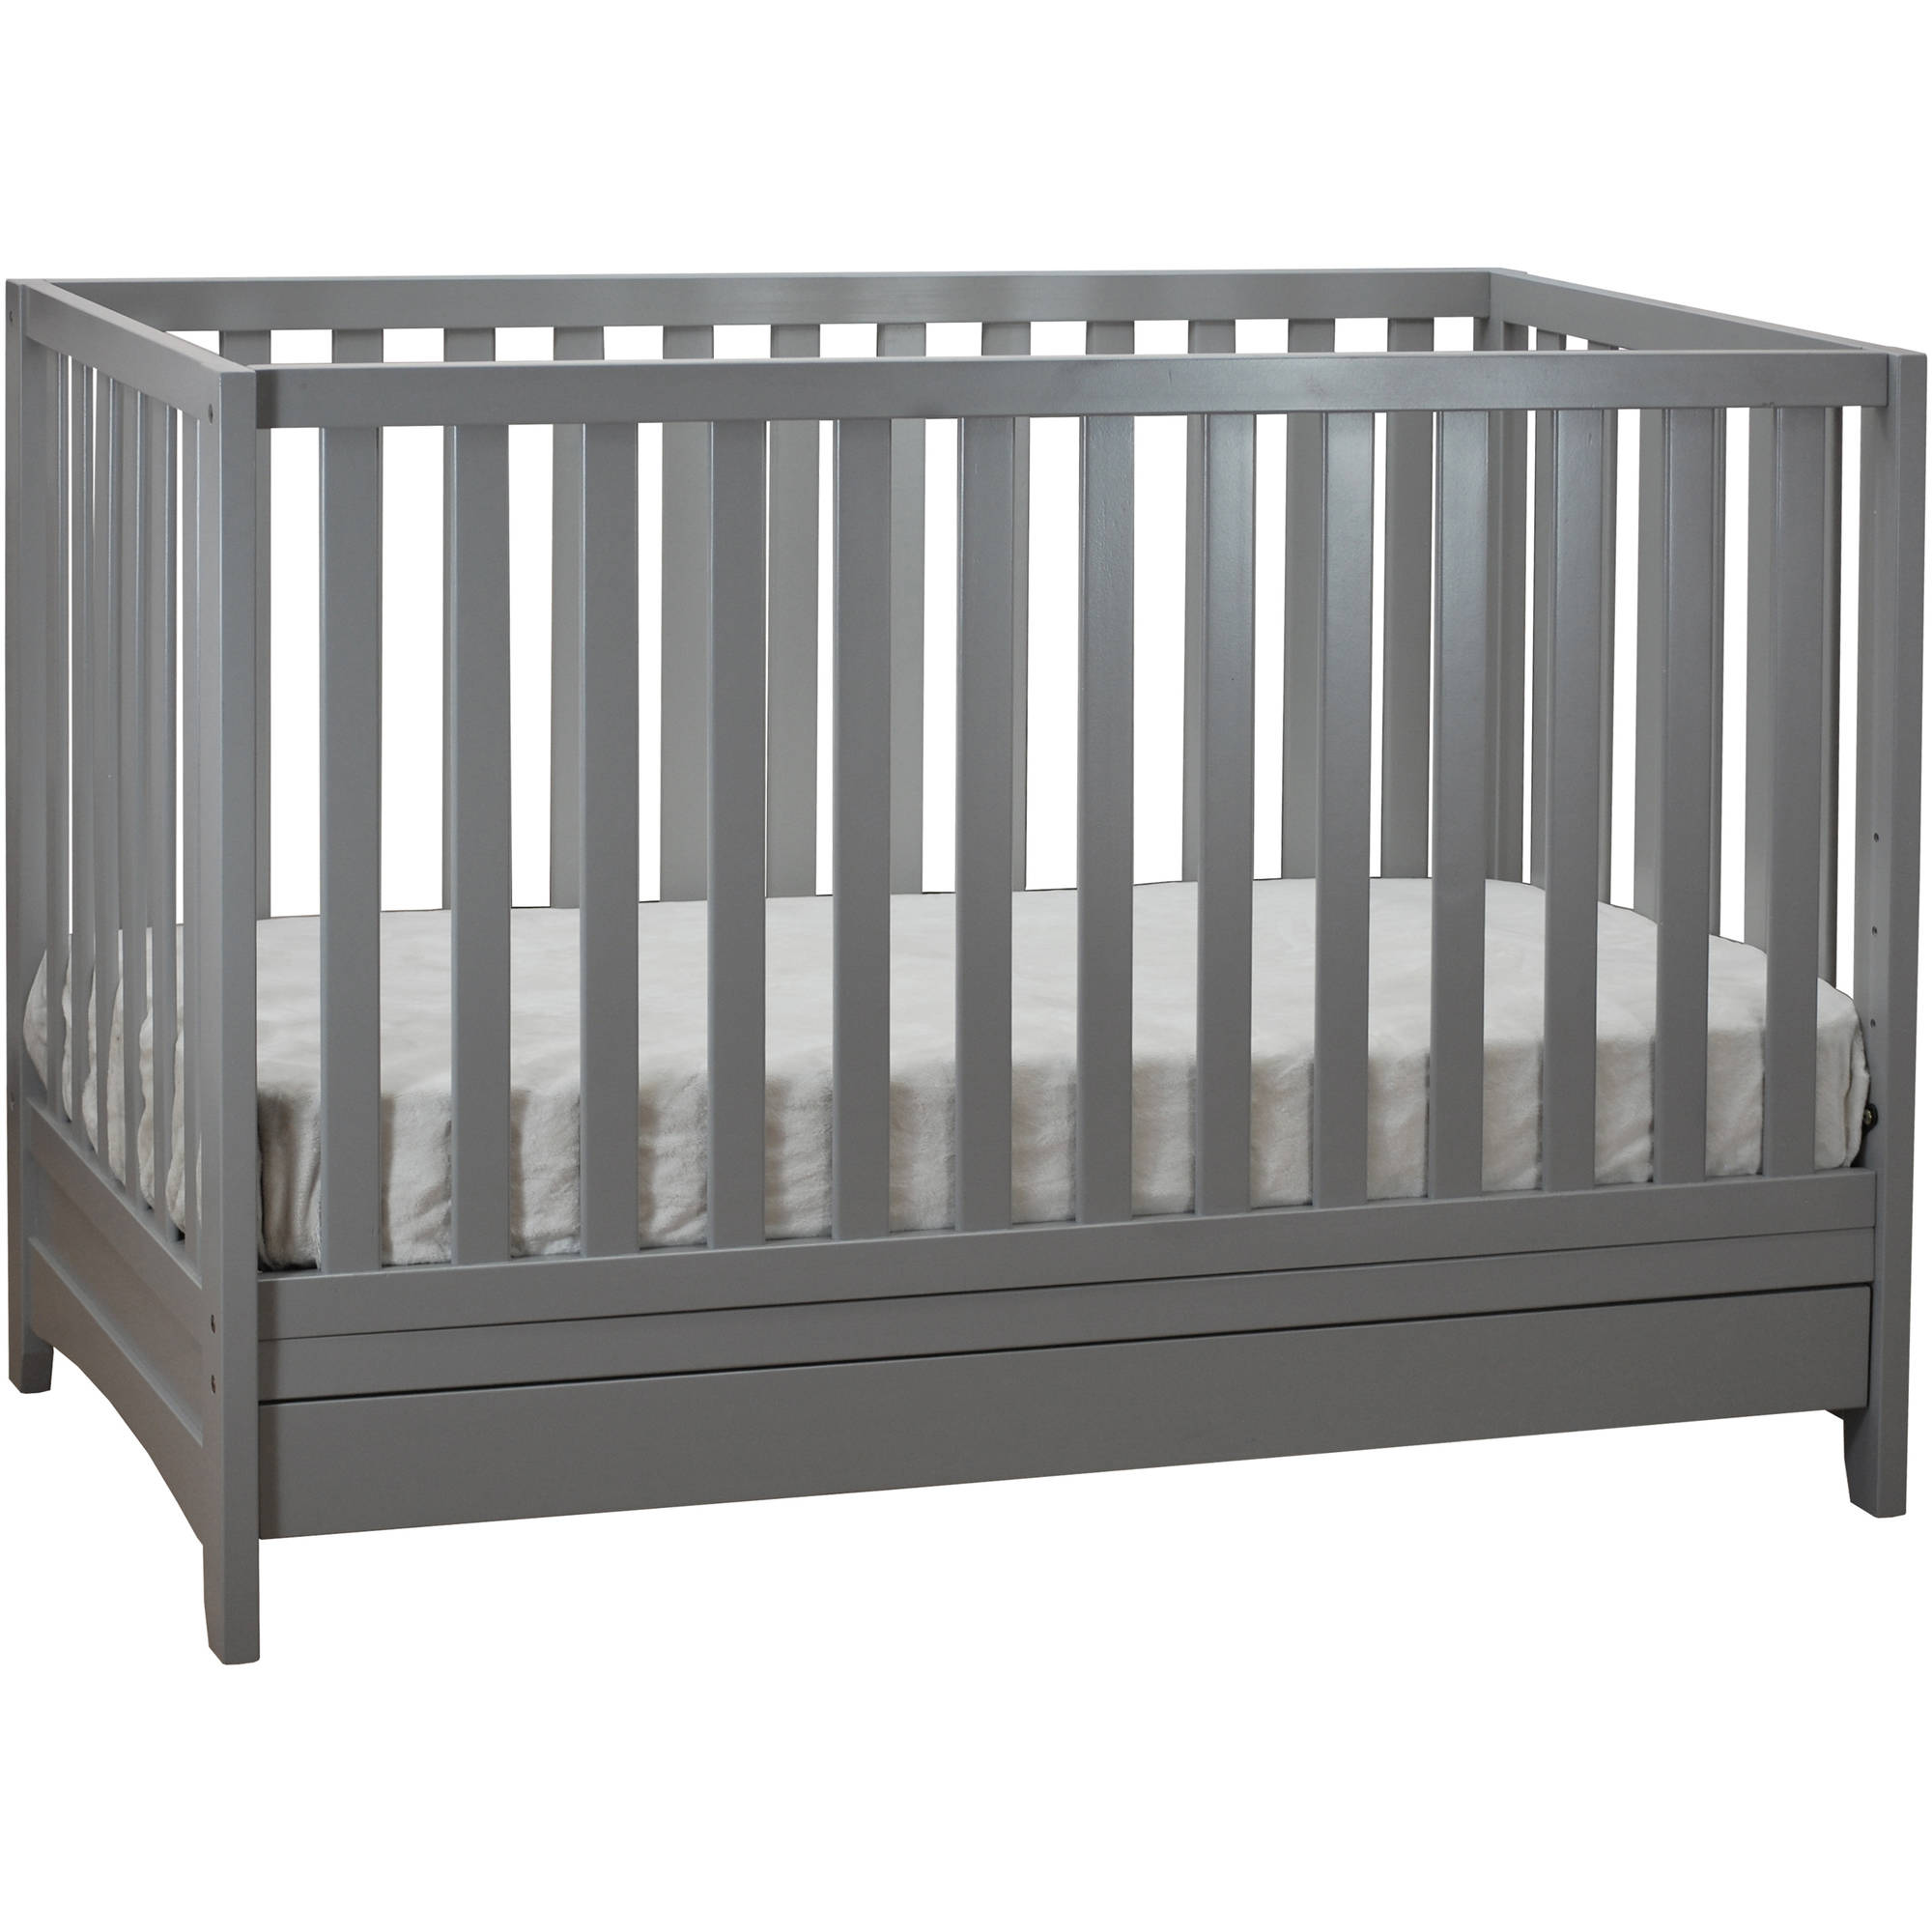 Athena Mila 3-in-1 Convertible Crib with Toddler Guardrail